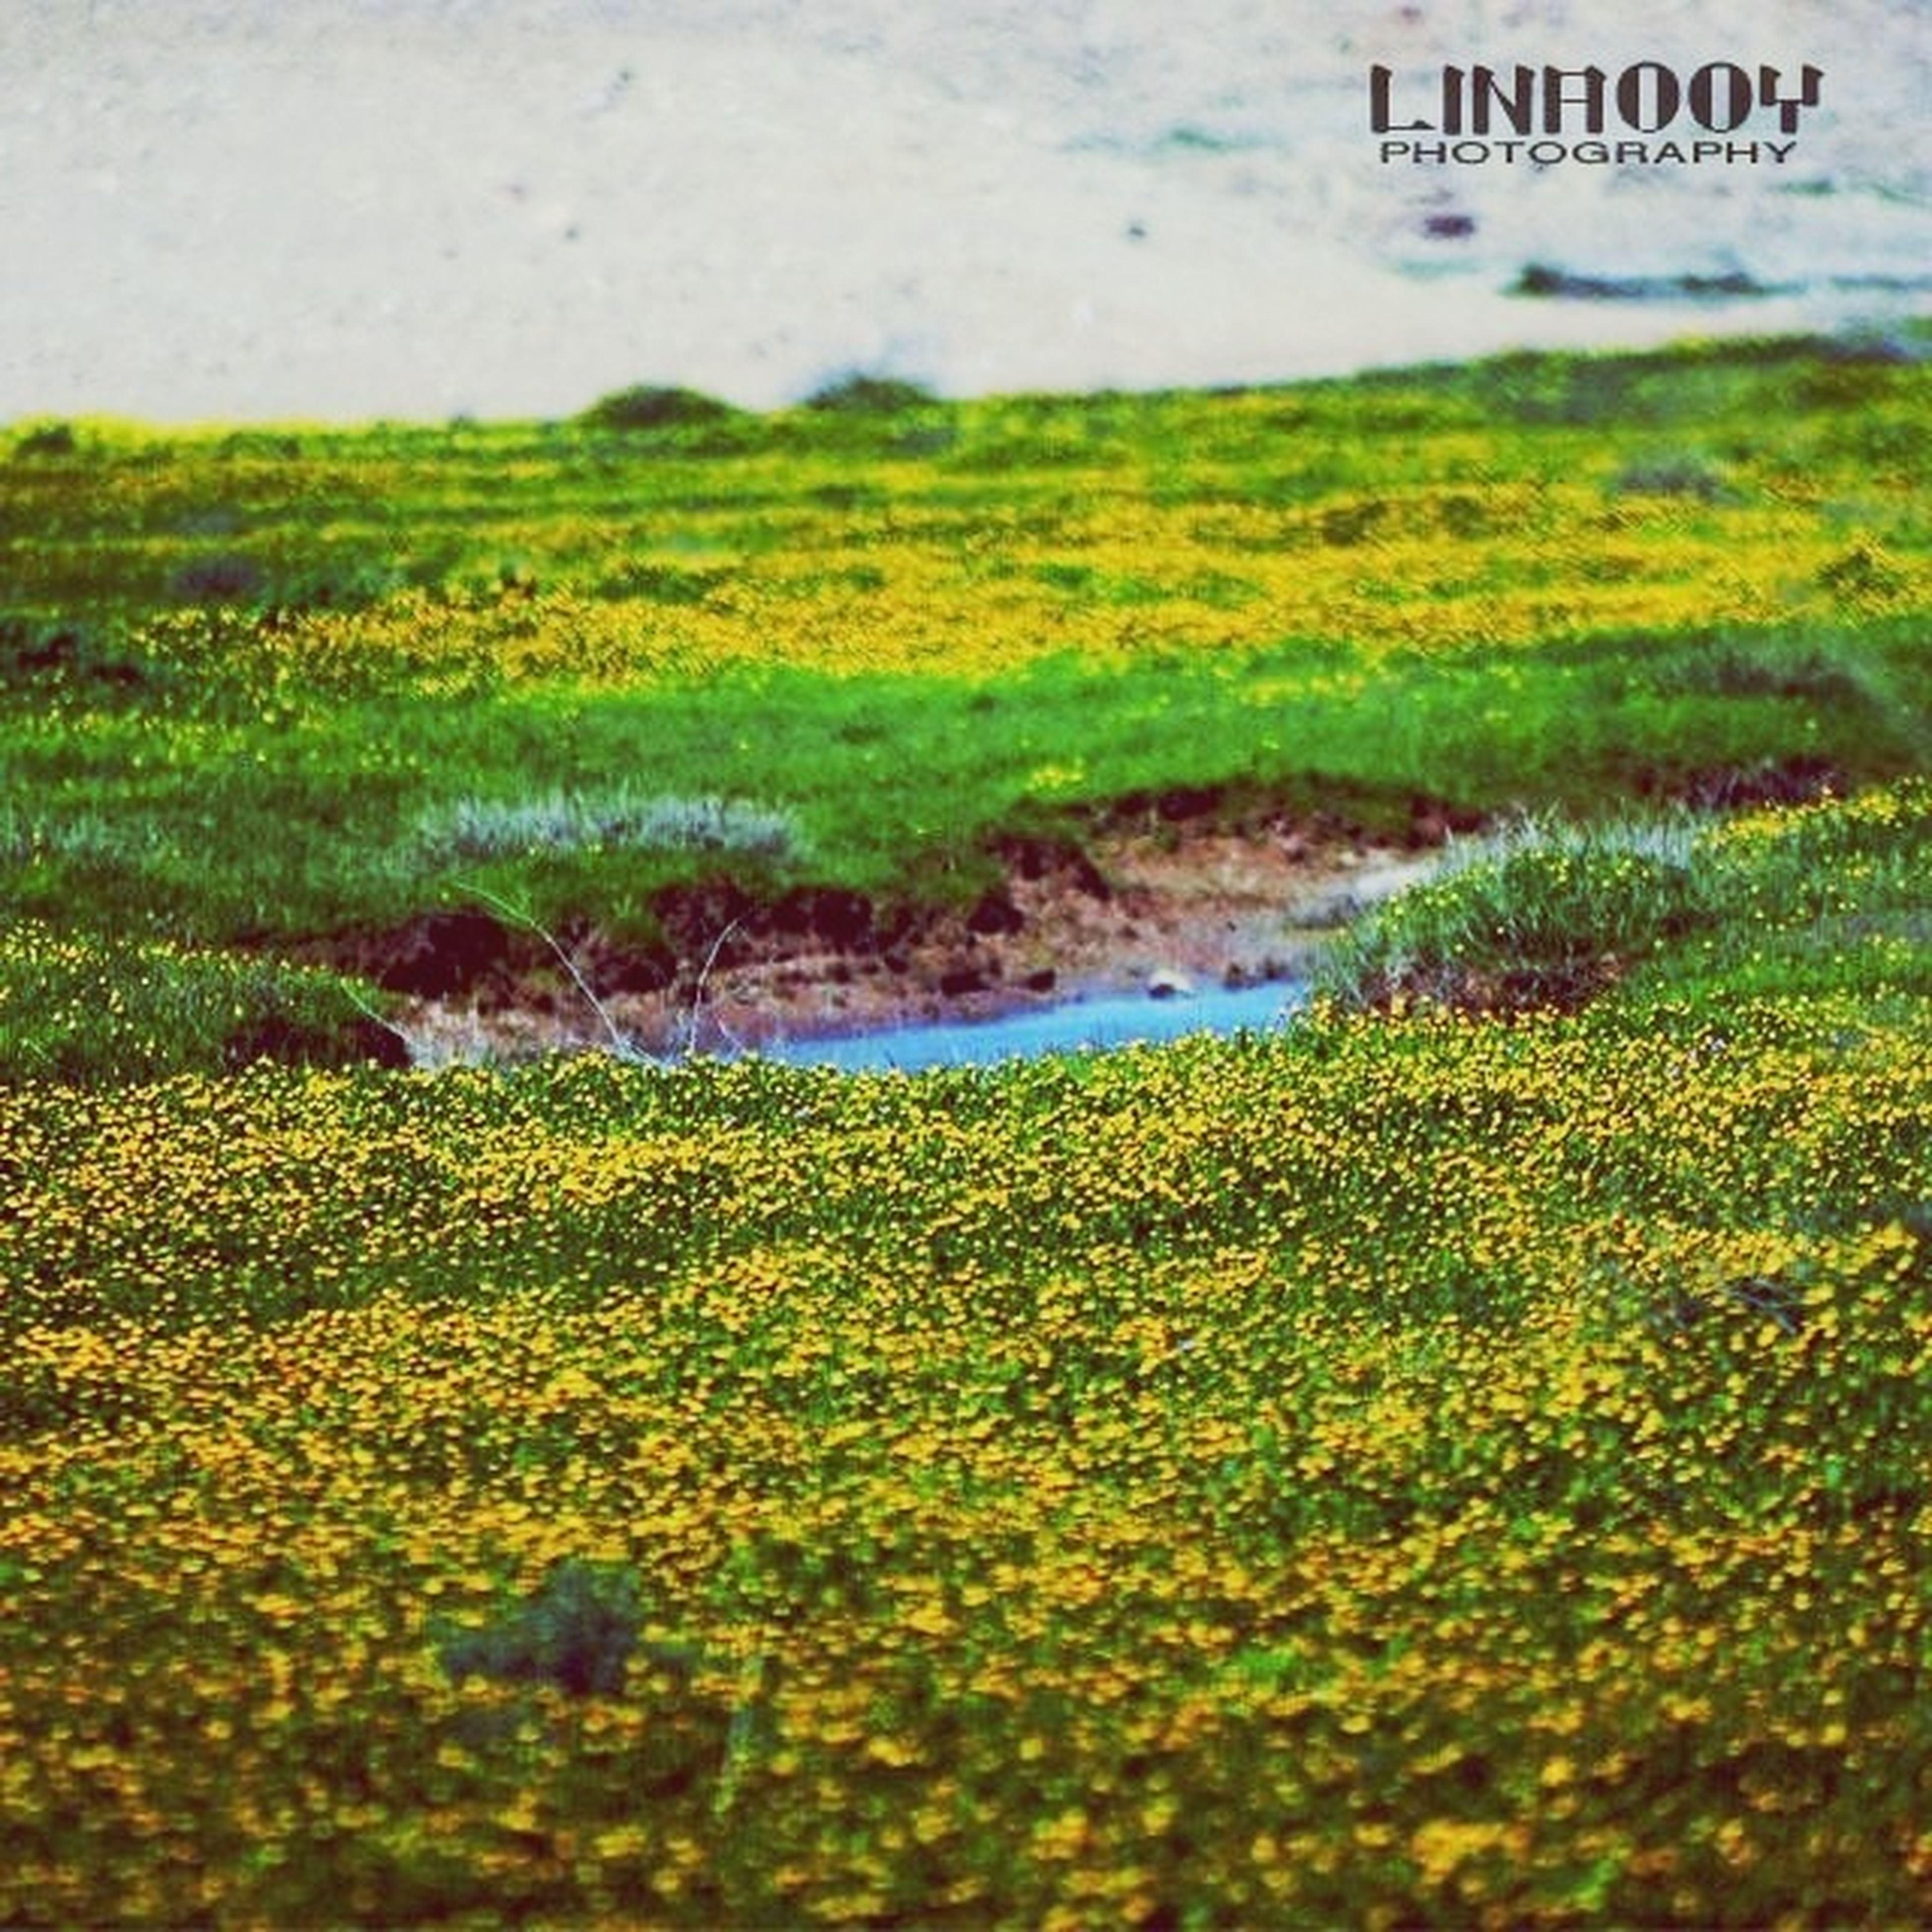 yellow, nature, growth, plant, water, field, grass, beauty in nature, green color, tranquility, day, outdoors, tranquil scene, freshness, no people, flower, high angle view, scenics, landscape, season